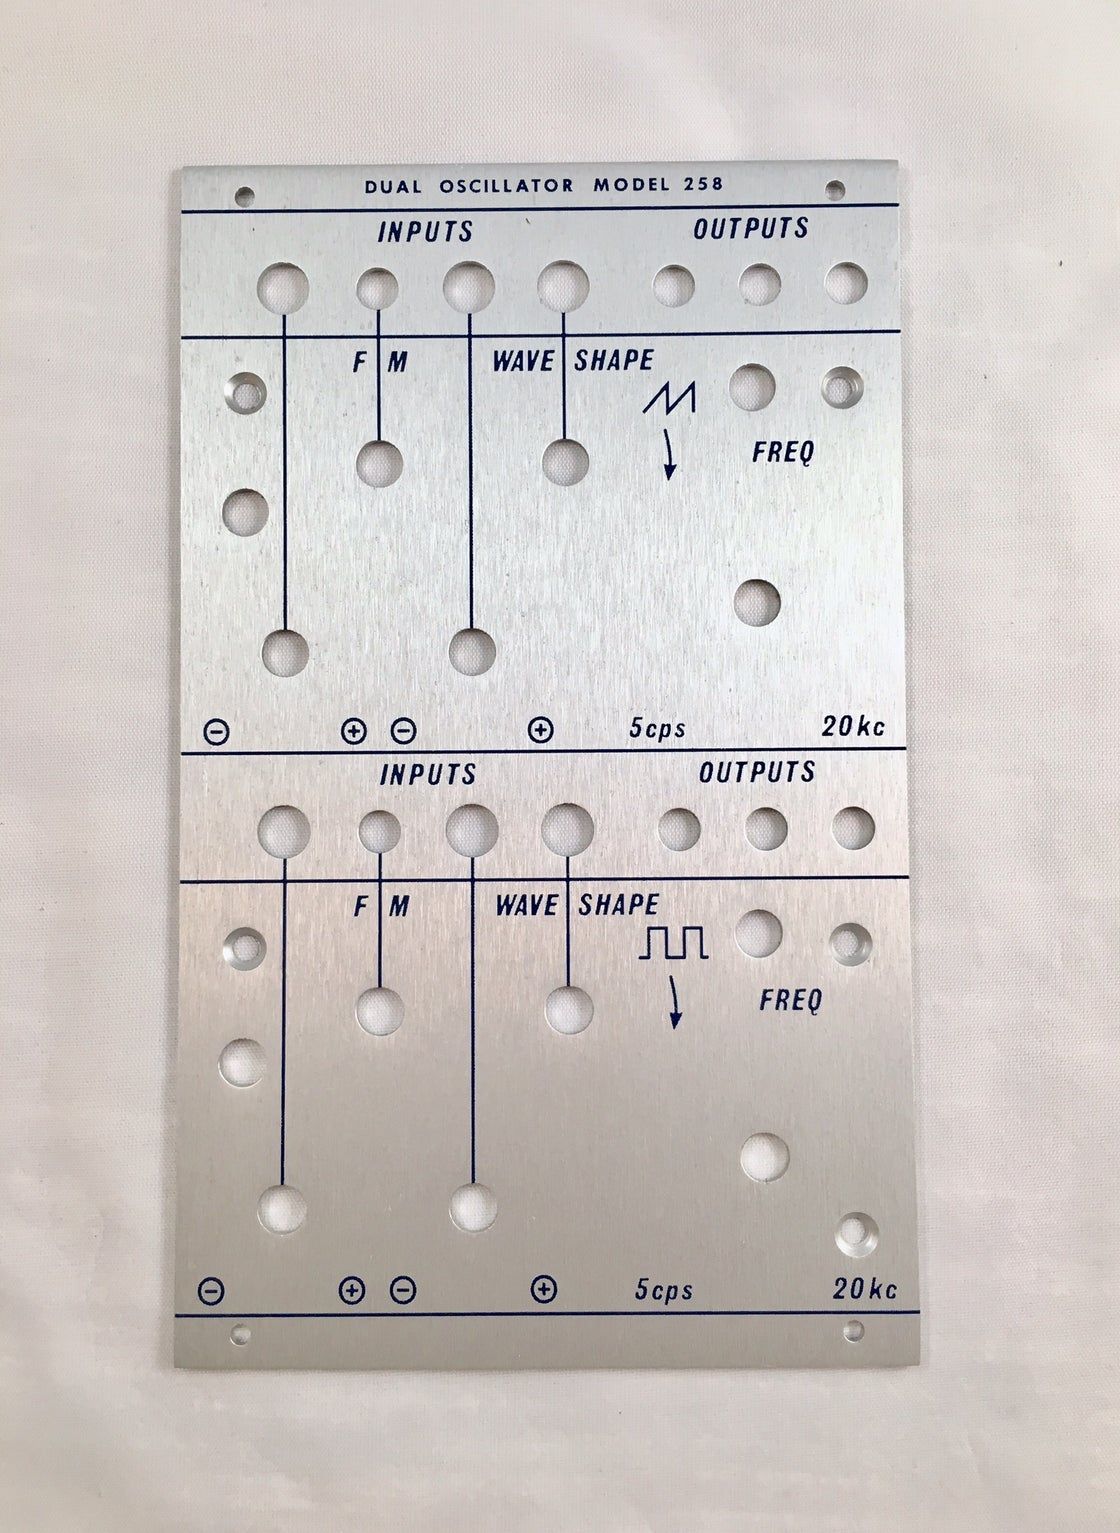 Image of 258c front panel